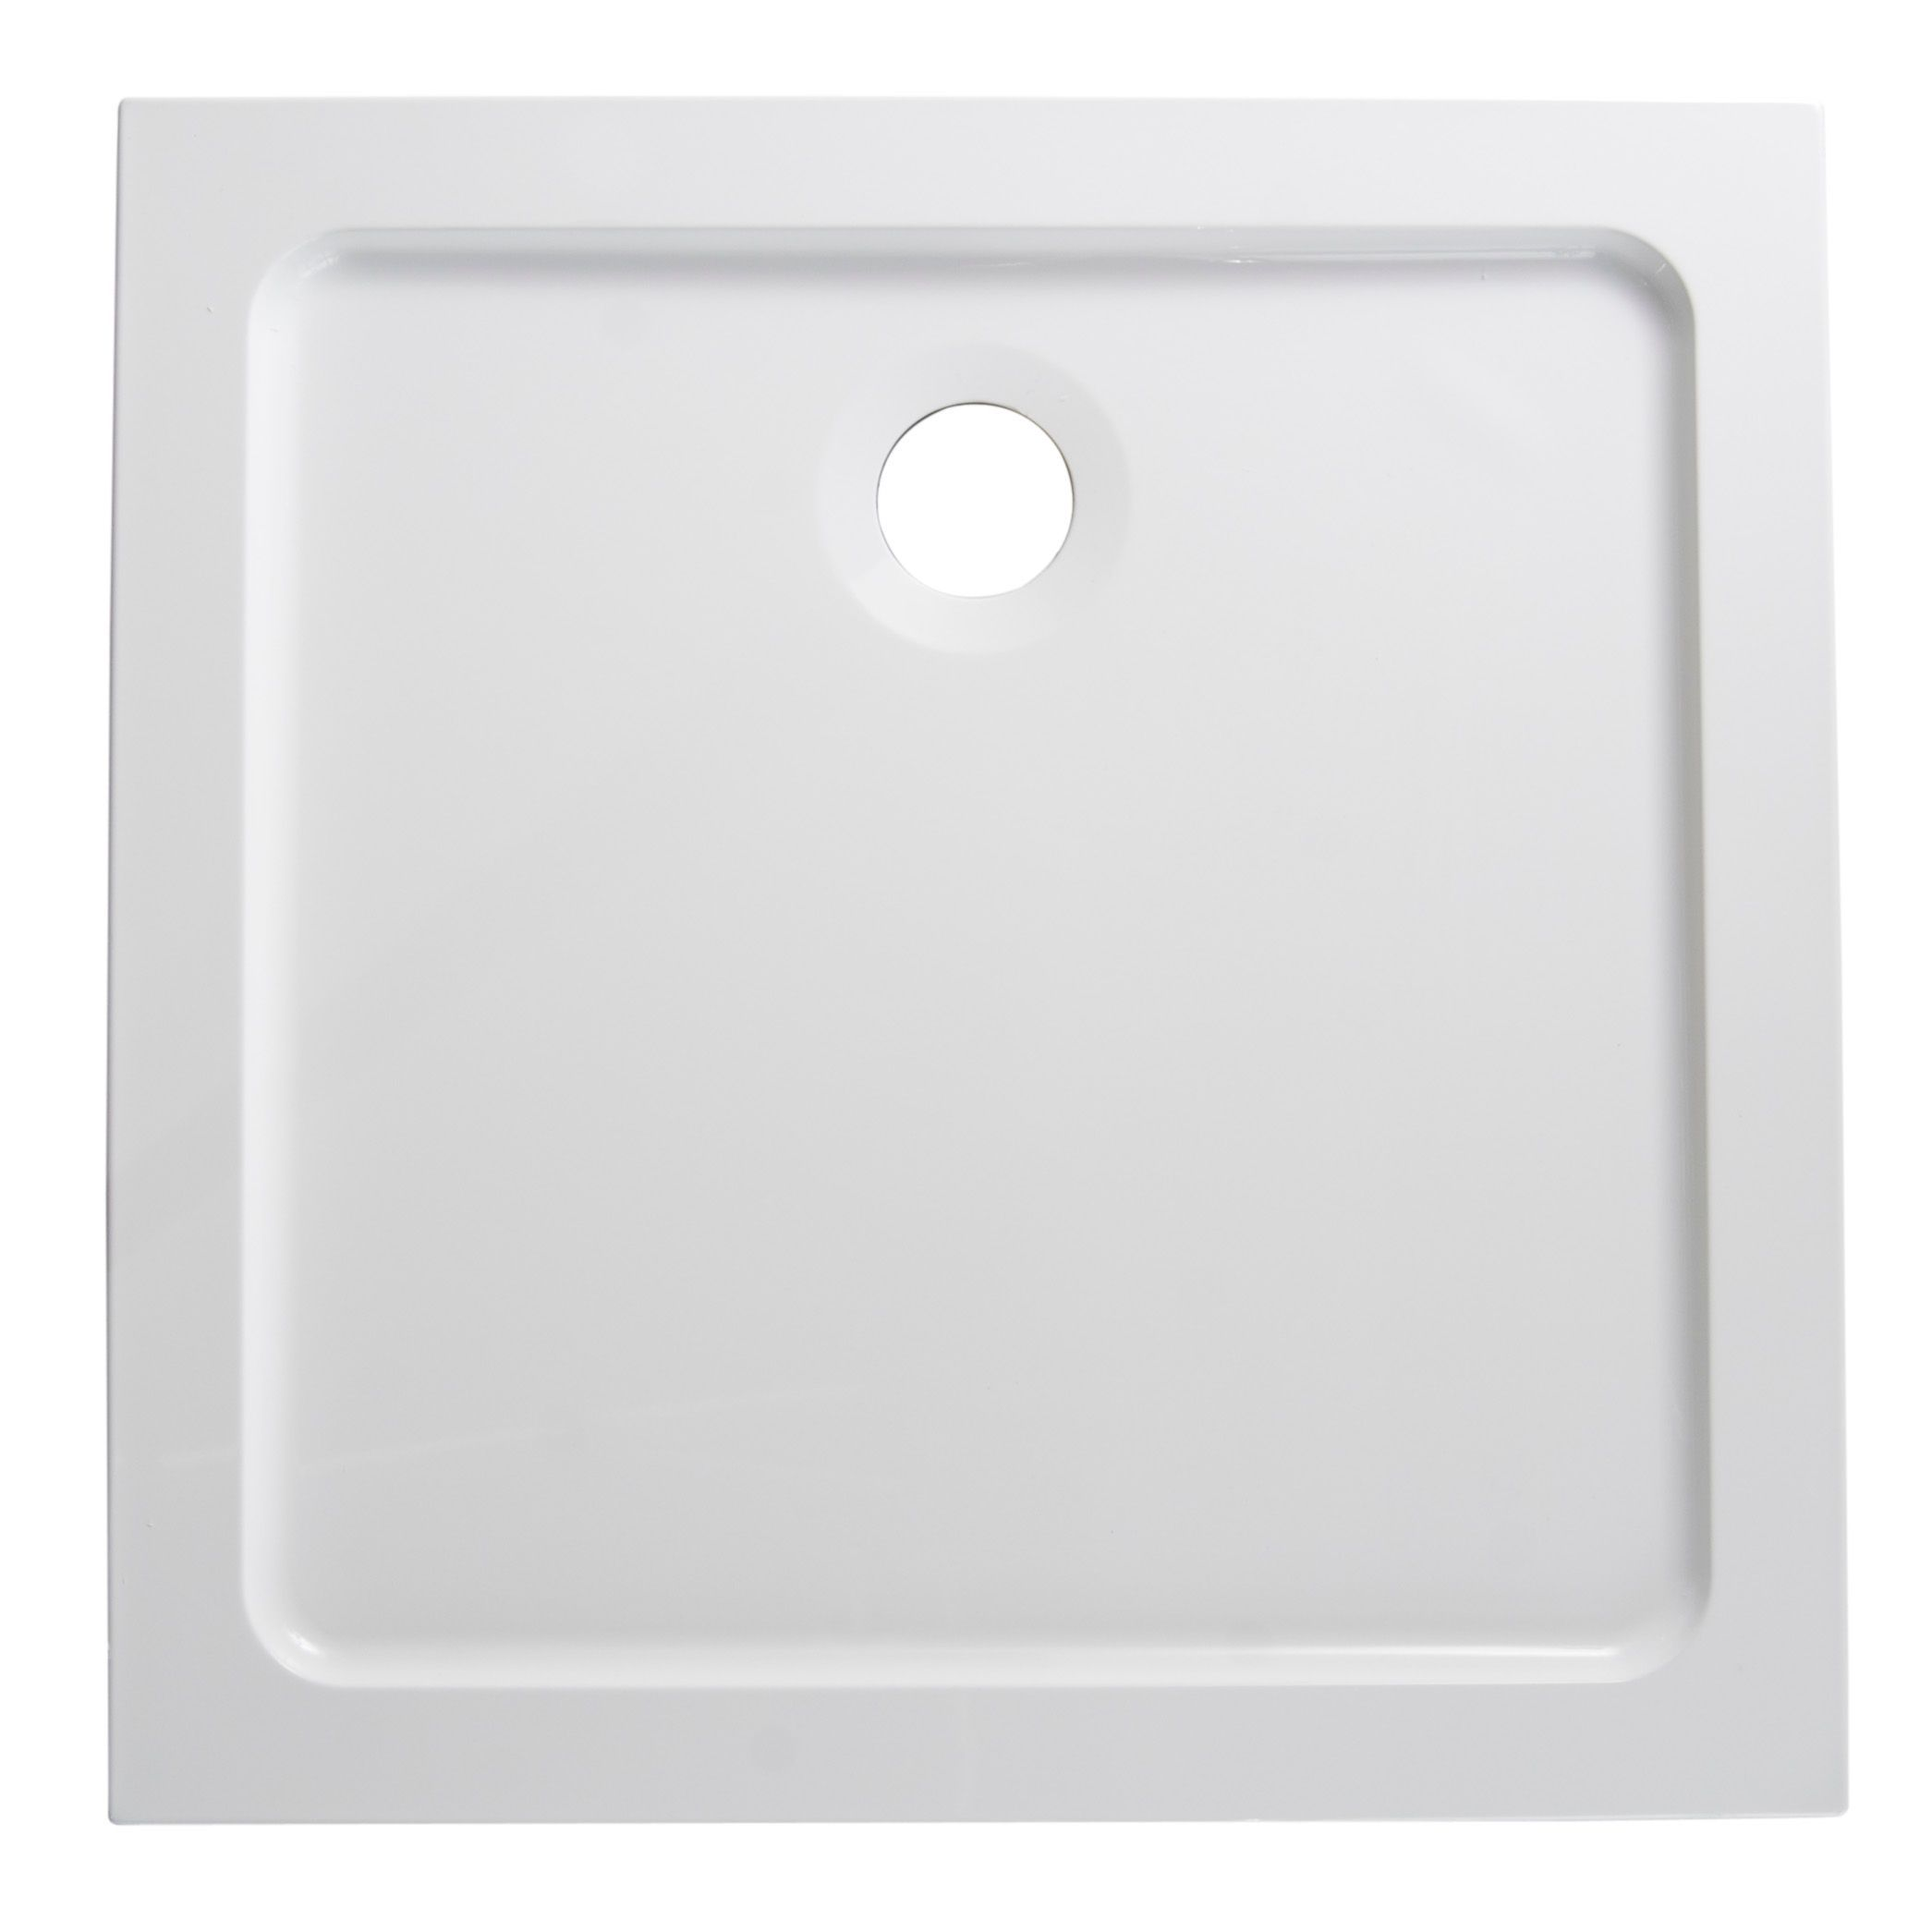 B&Q Low Profile Square Shower Tray (L)800mm (W)800mm (D)40mm | Trays ...